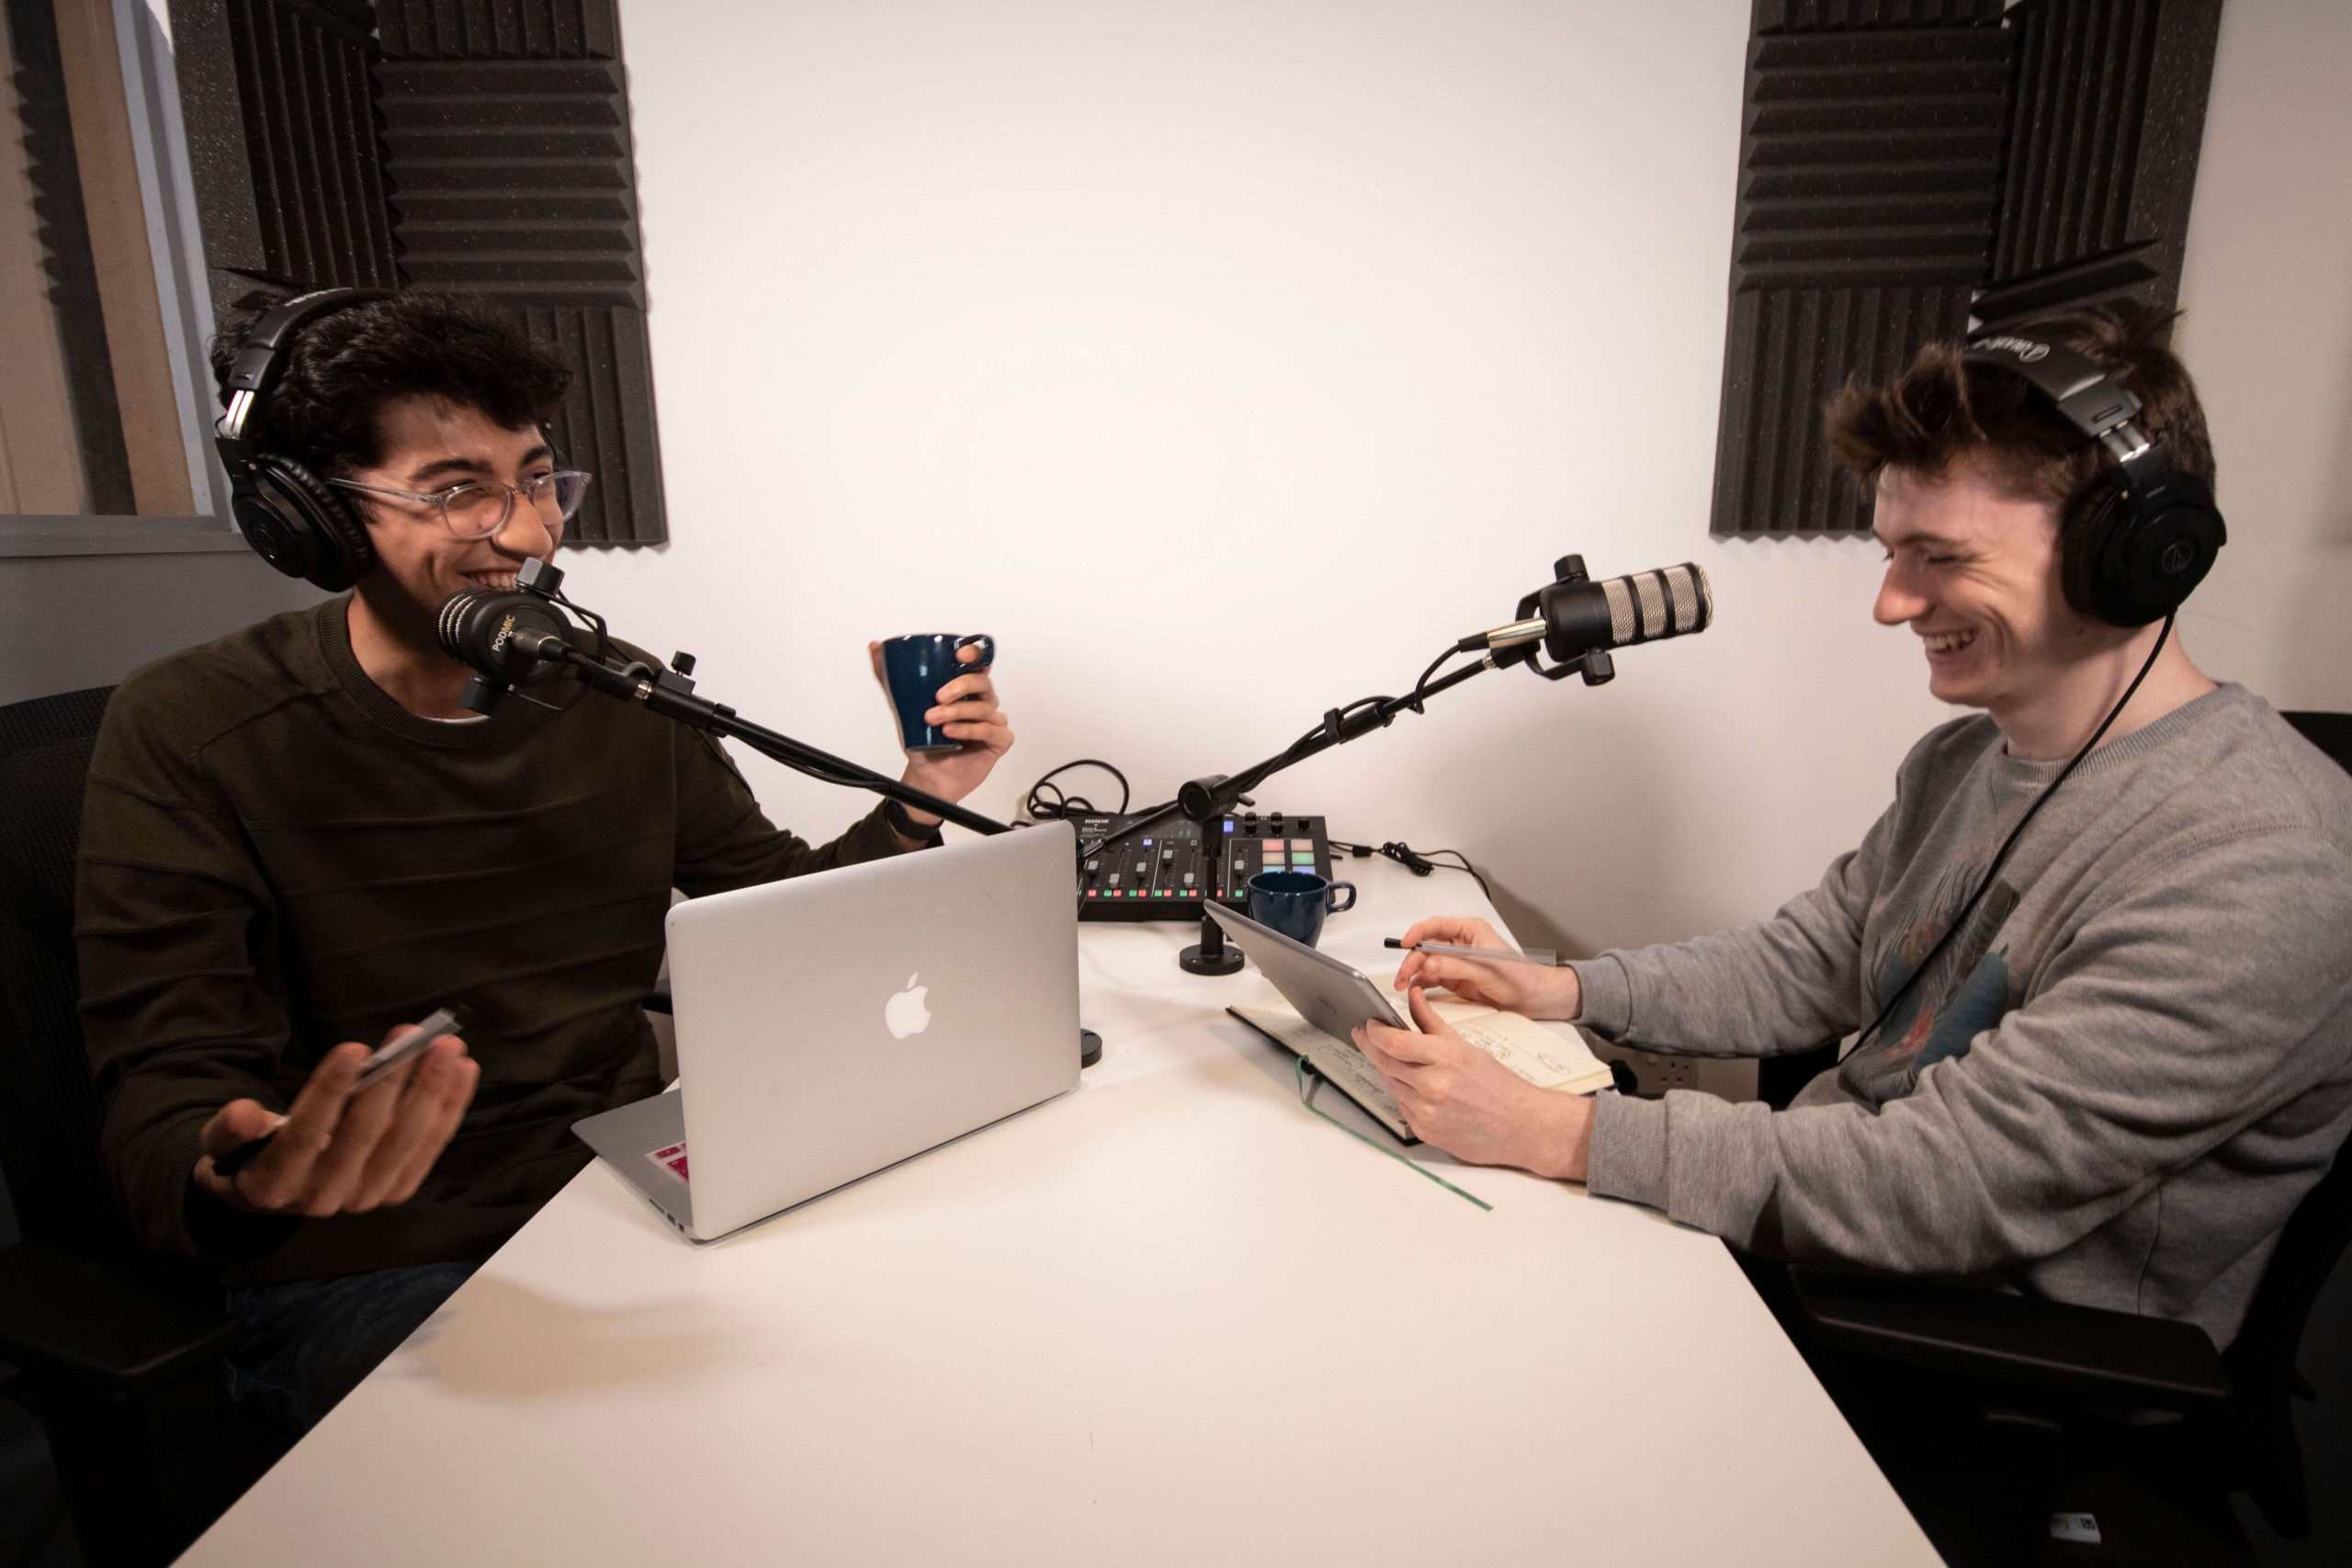 2 young guys podcasting in studio